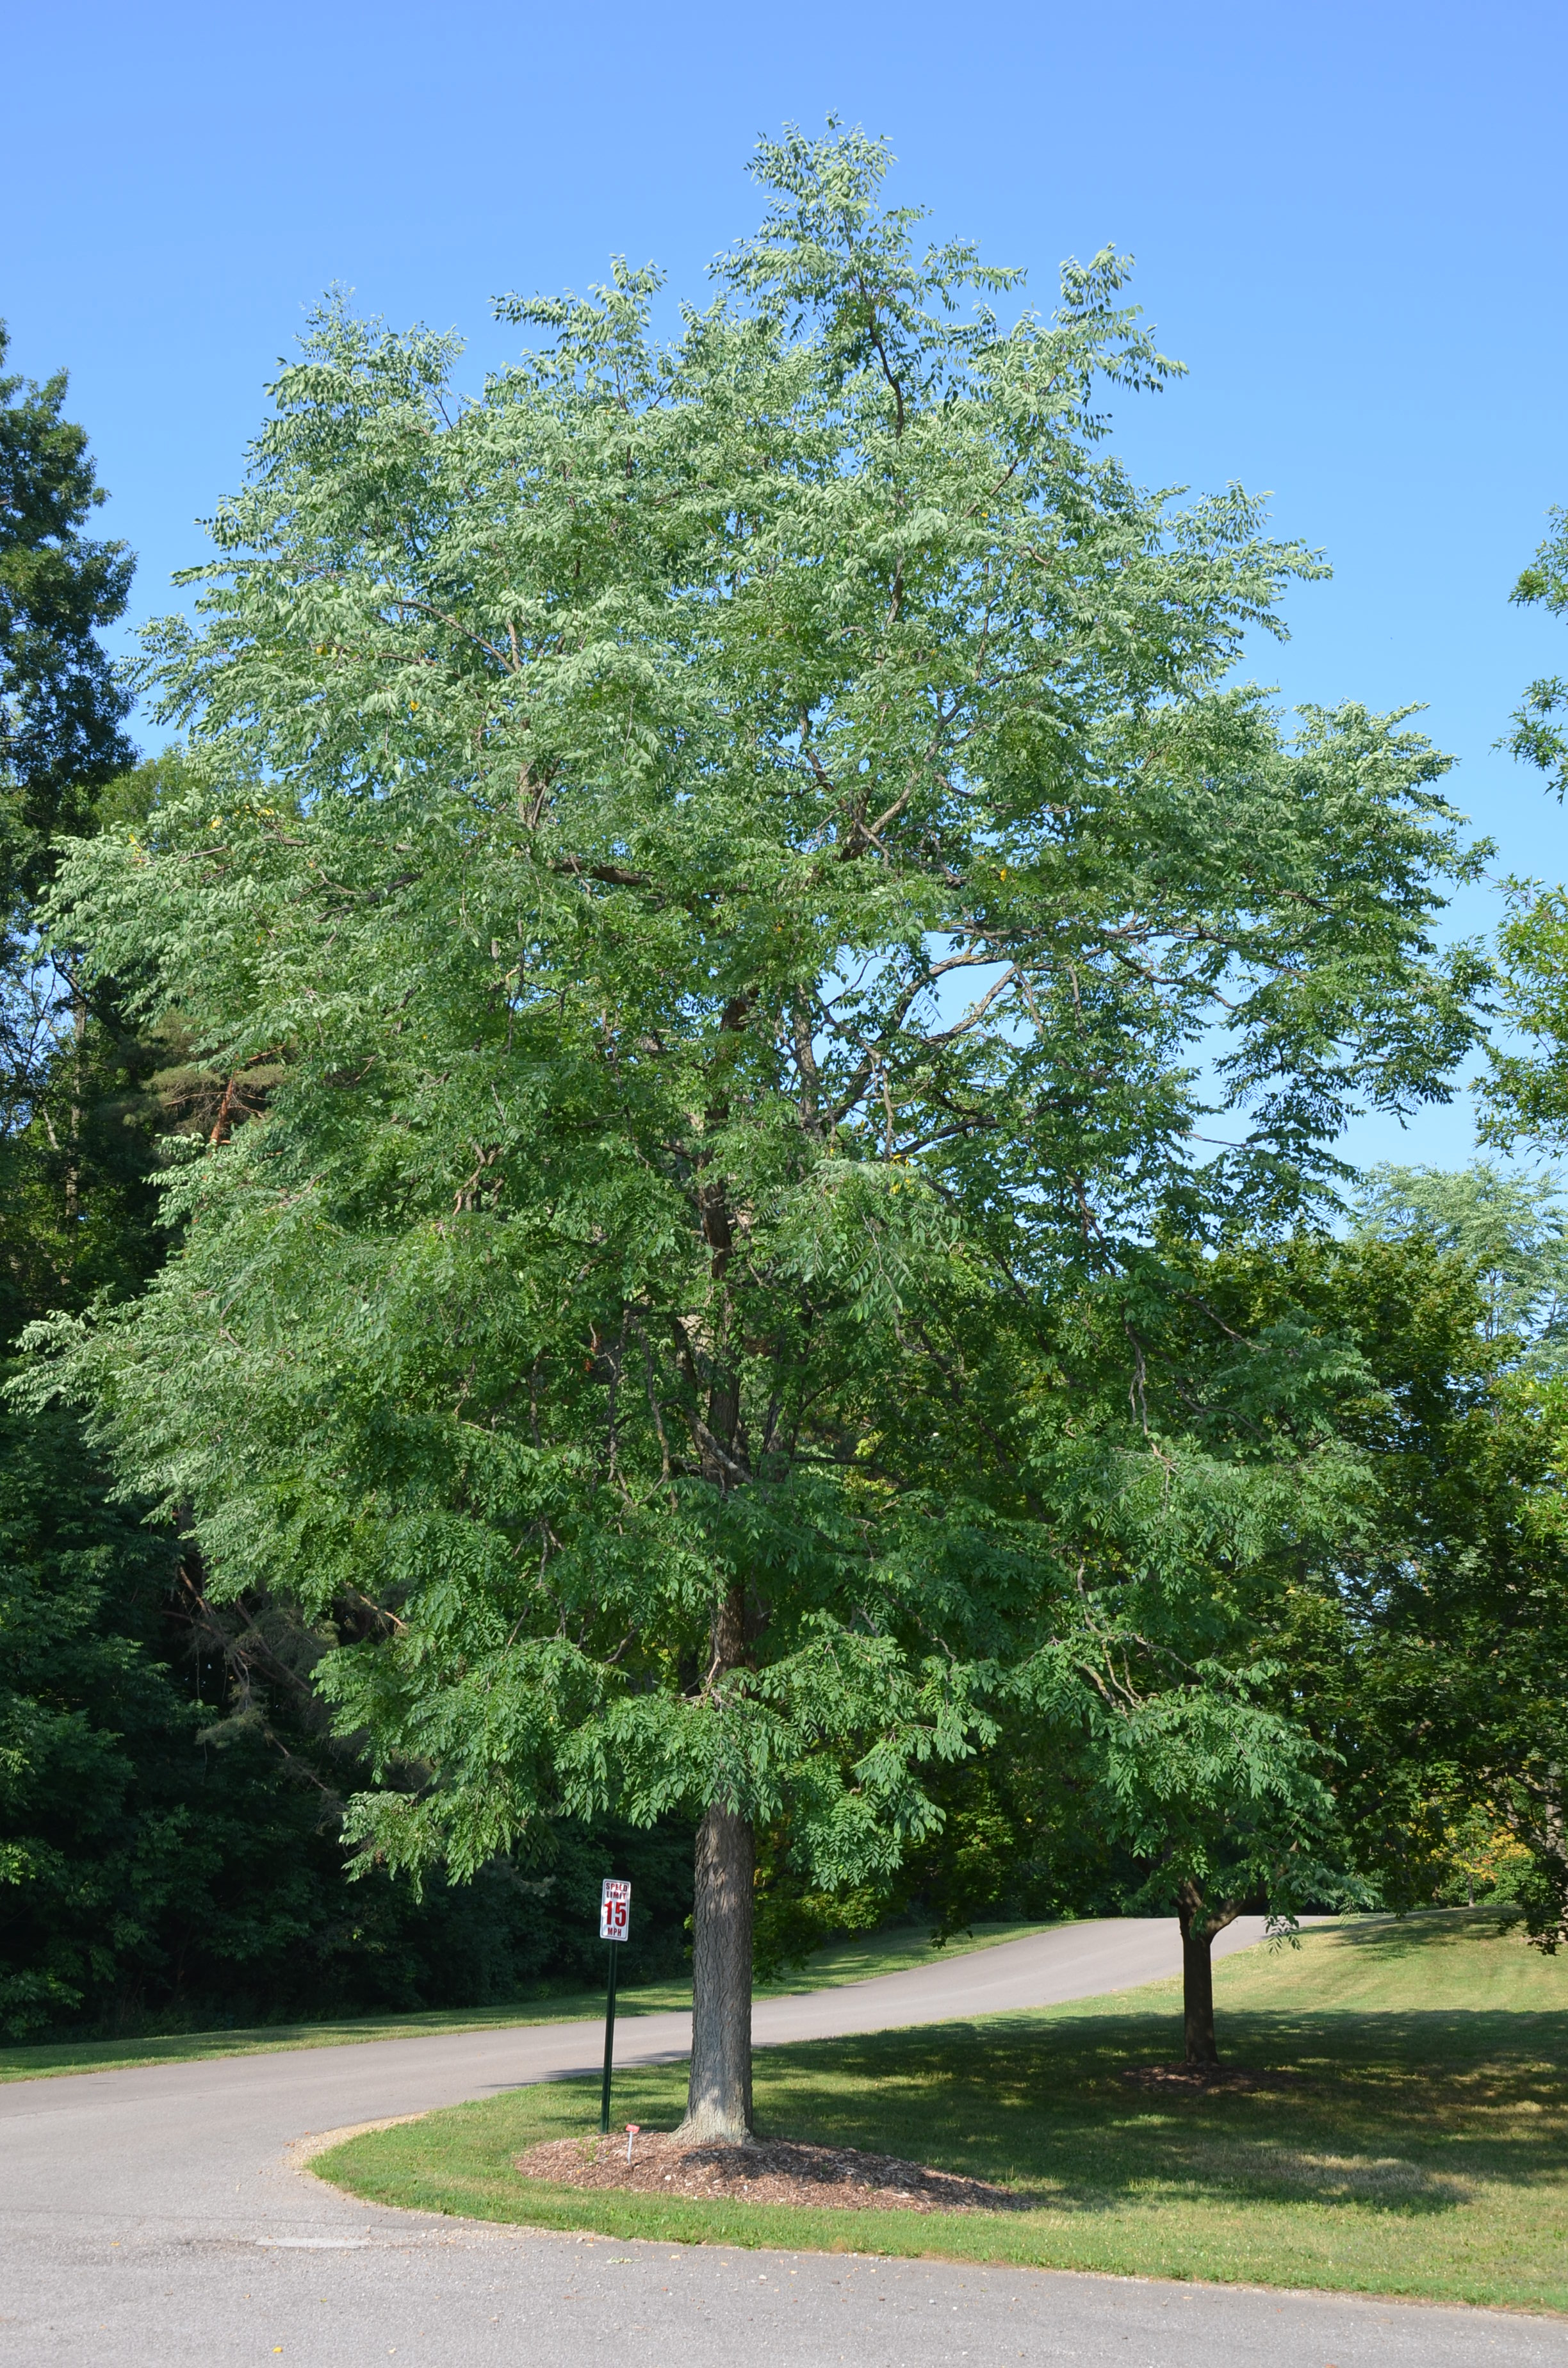 Kentucky Coffee A Superior Large Native Tree | What Grows There ...